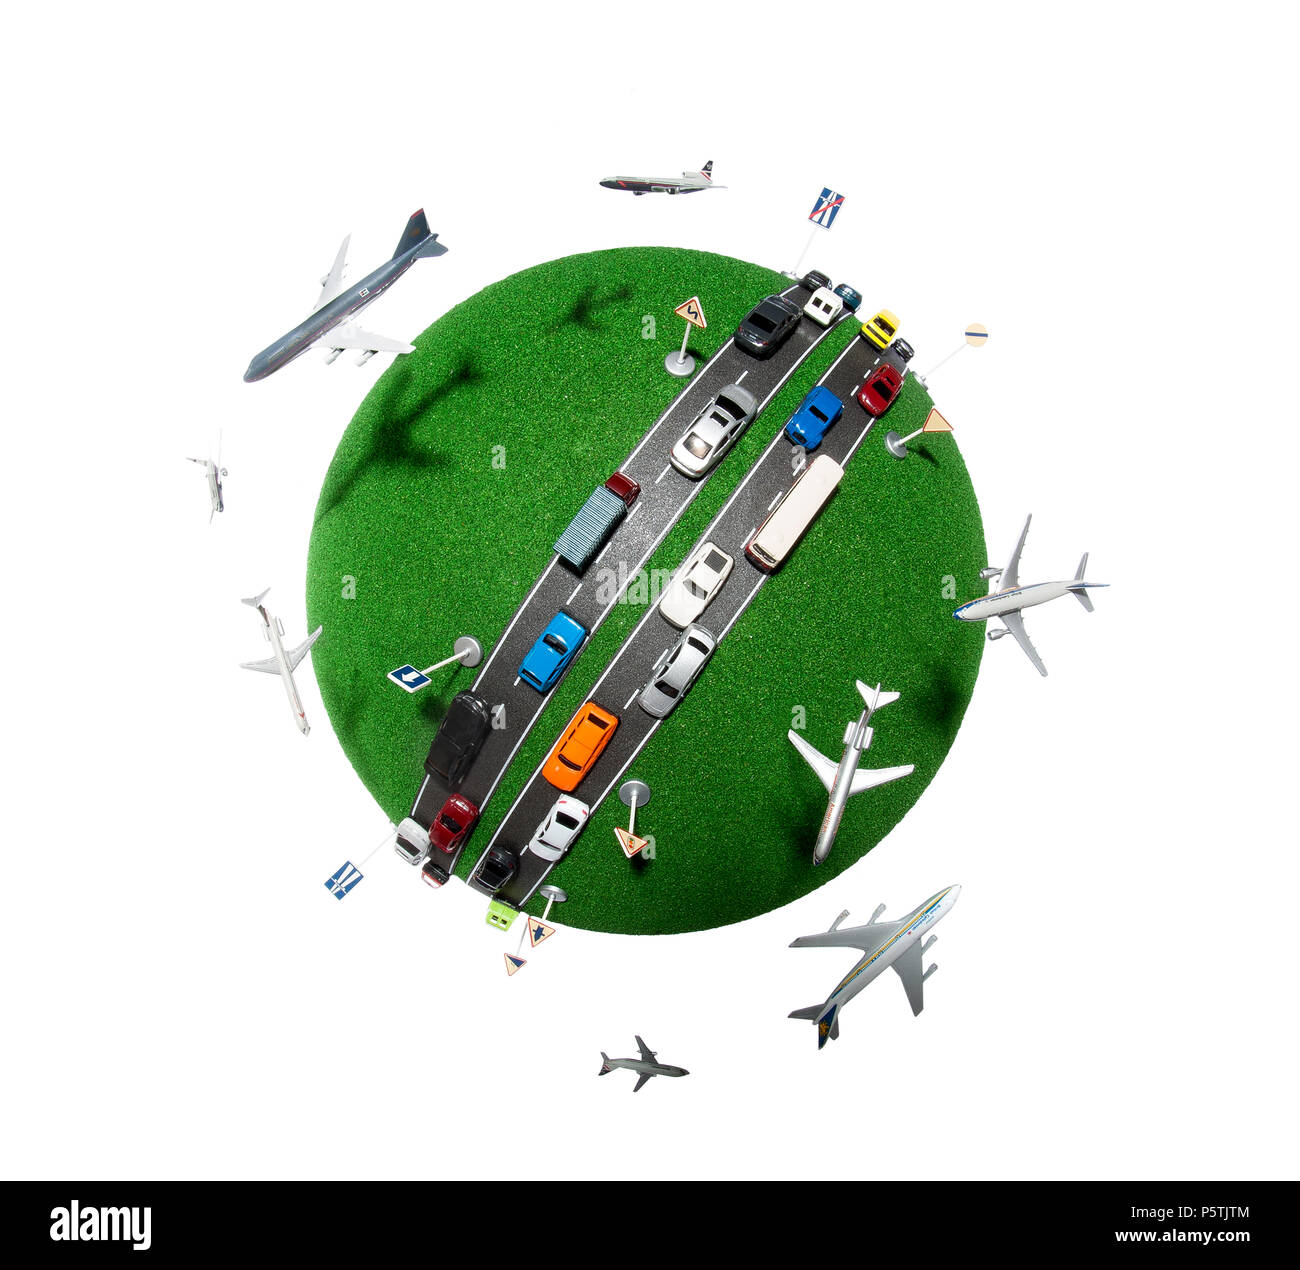 A representation of the planet showing the pollution from human activity and travel. - Stock Image